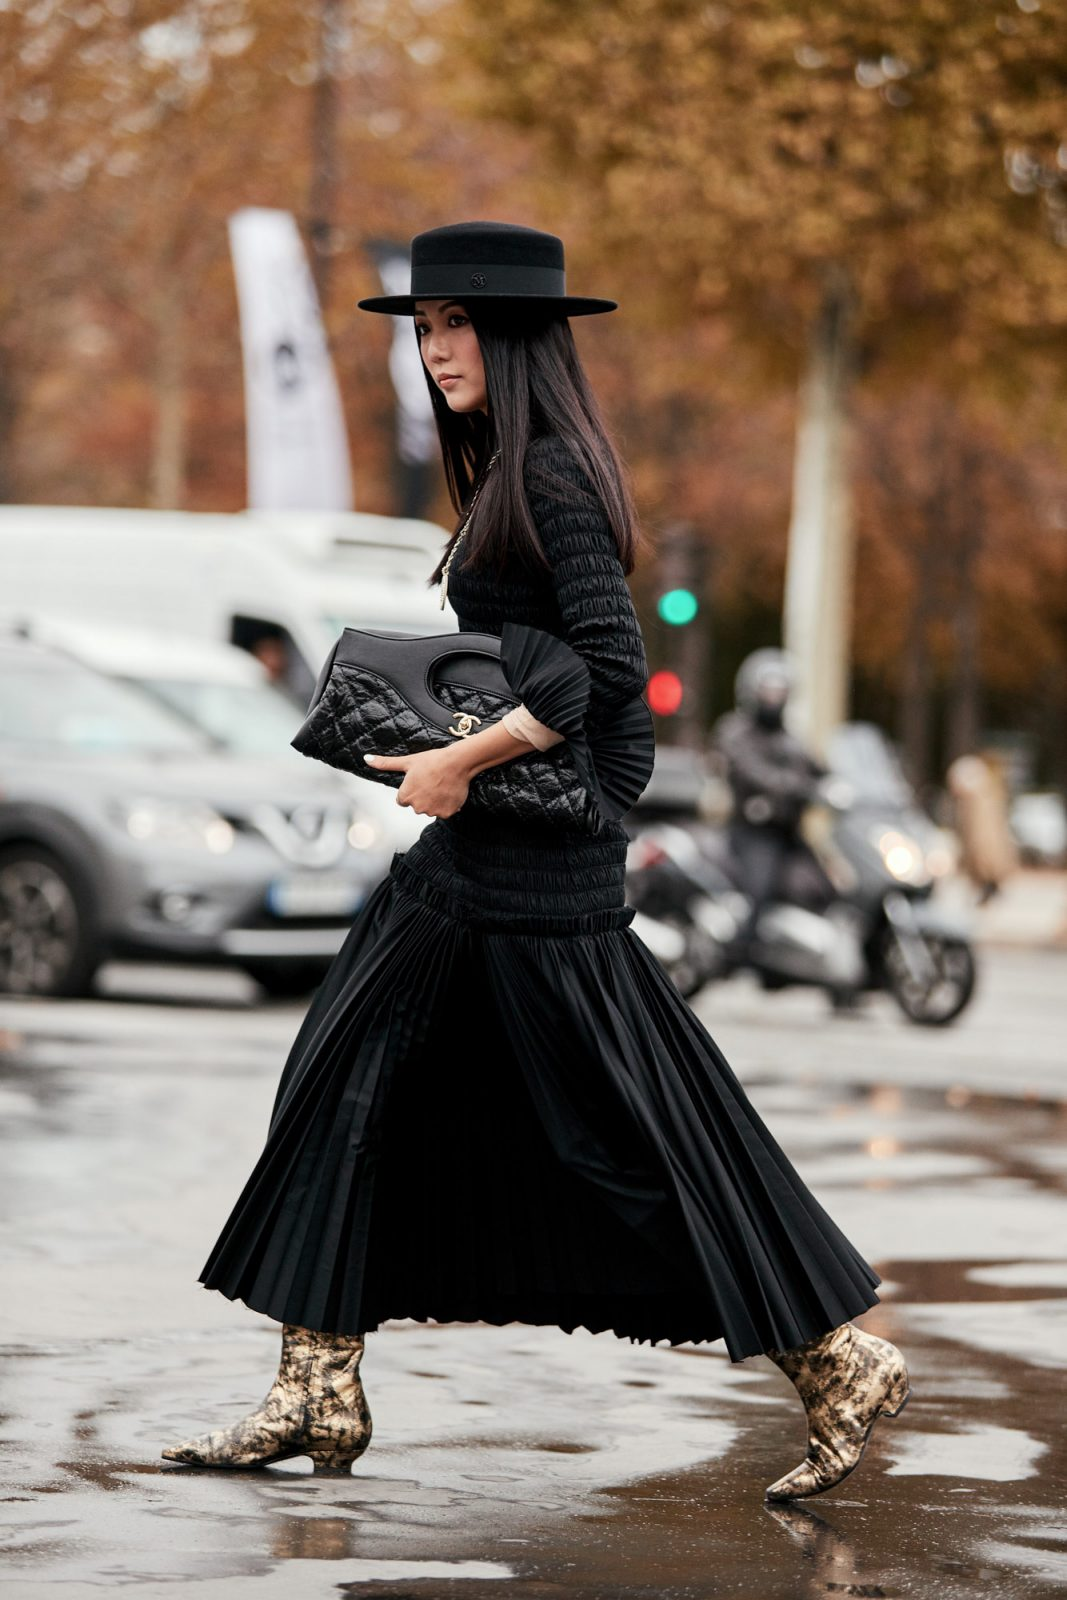 classic black skirt, shirt and hat combo with accent shoes